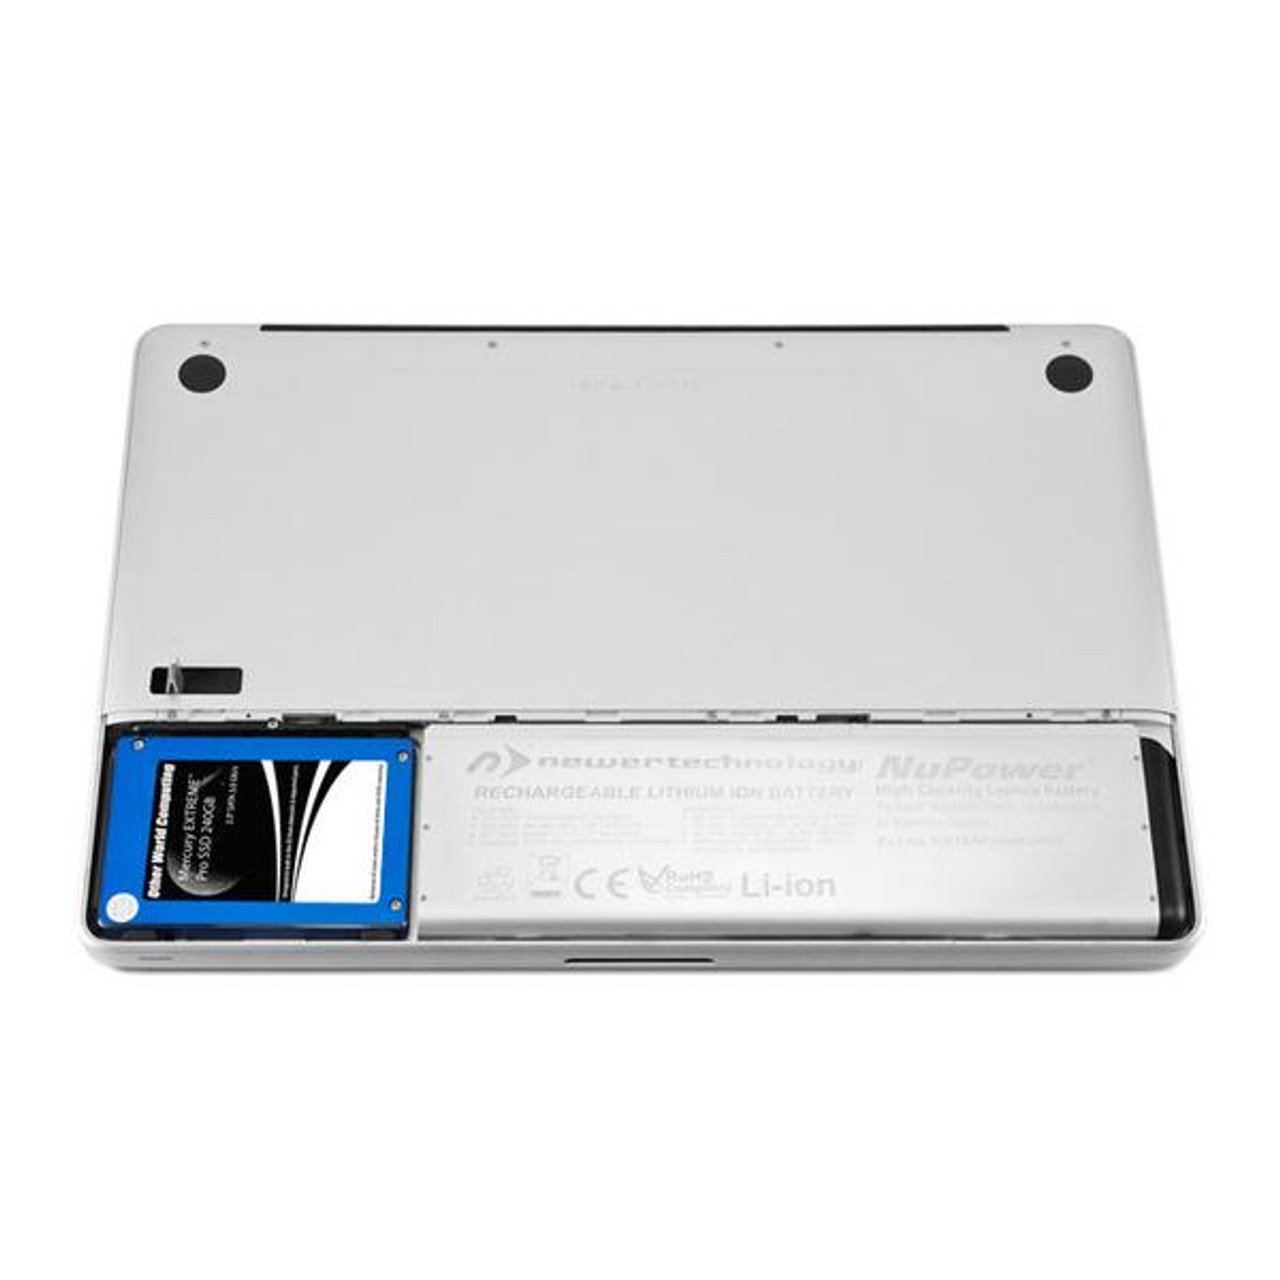 NewerTech NuPower 58W Battery (for MacBook Pro 15-inch Unibody Late 2008 & Early 2009)